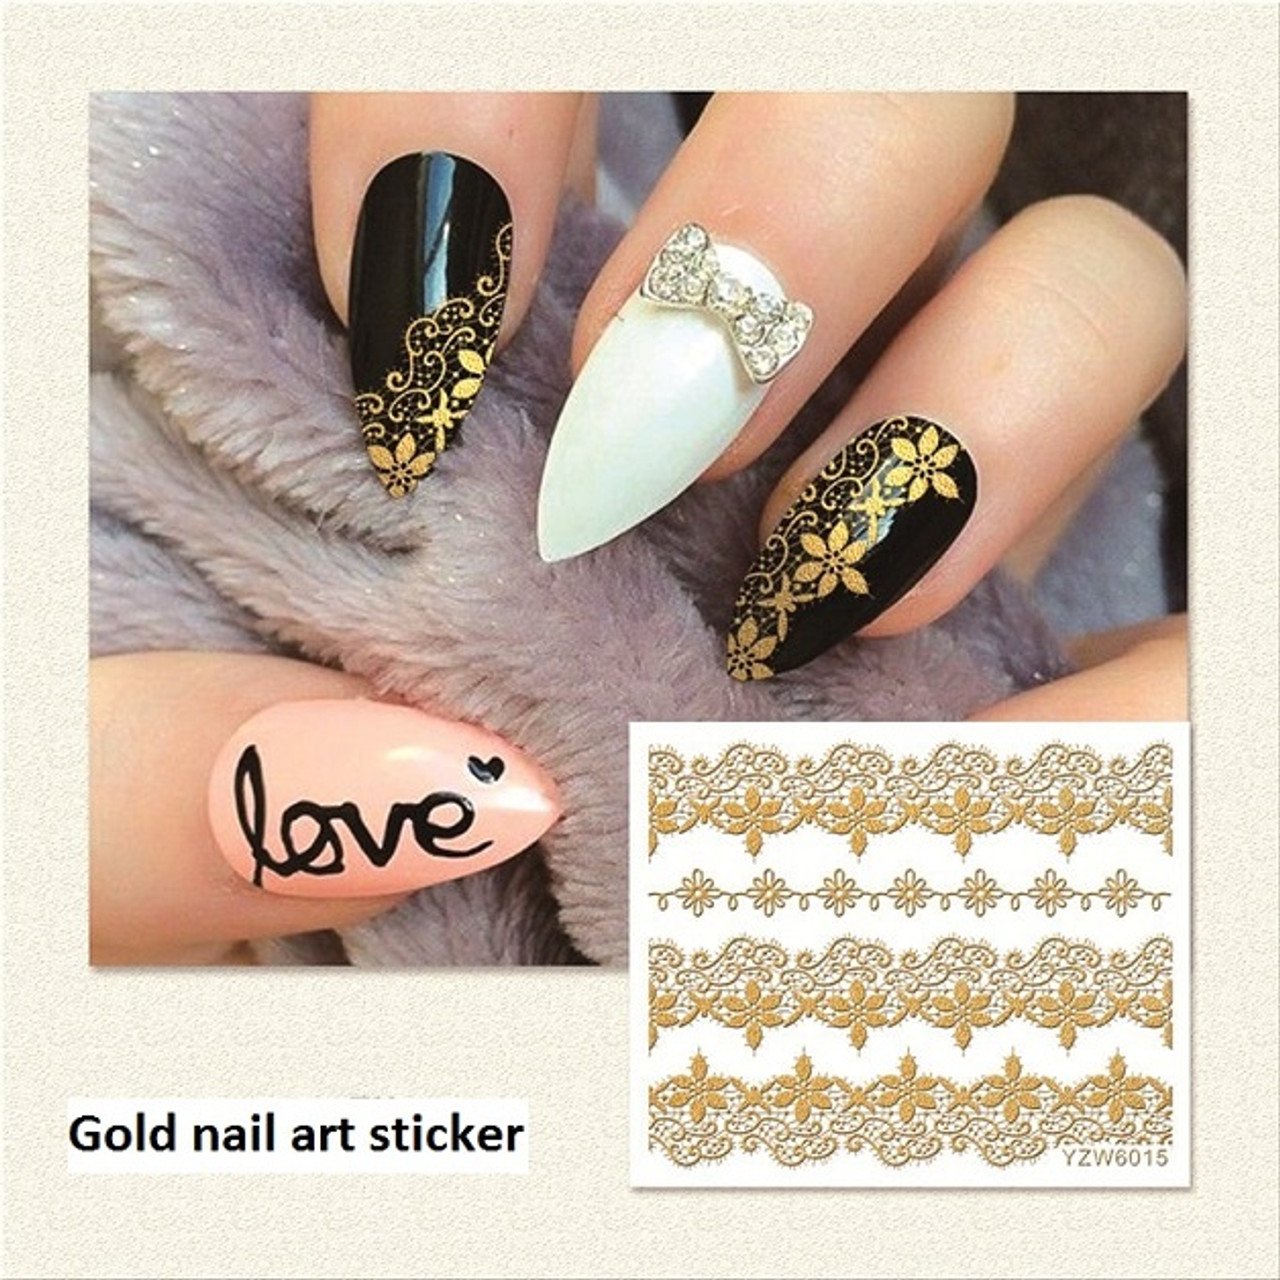 3D Gold Nail Art Decal Stickers - Fashion Mouse